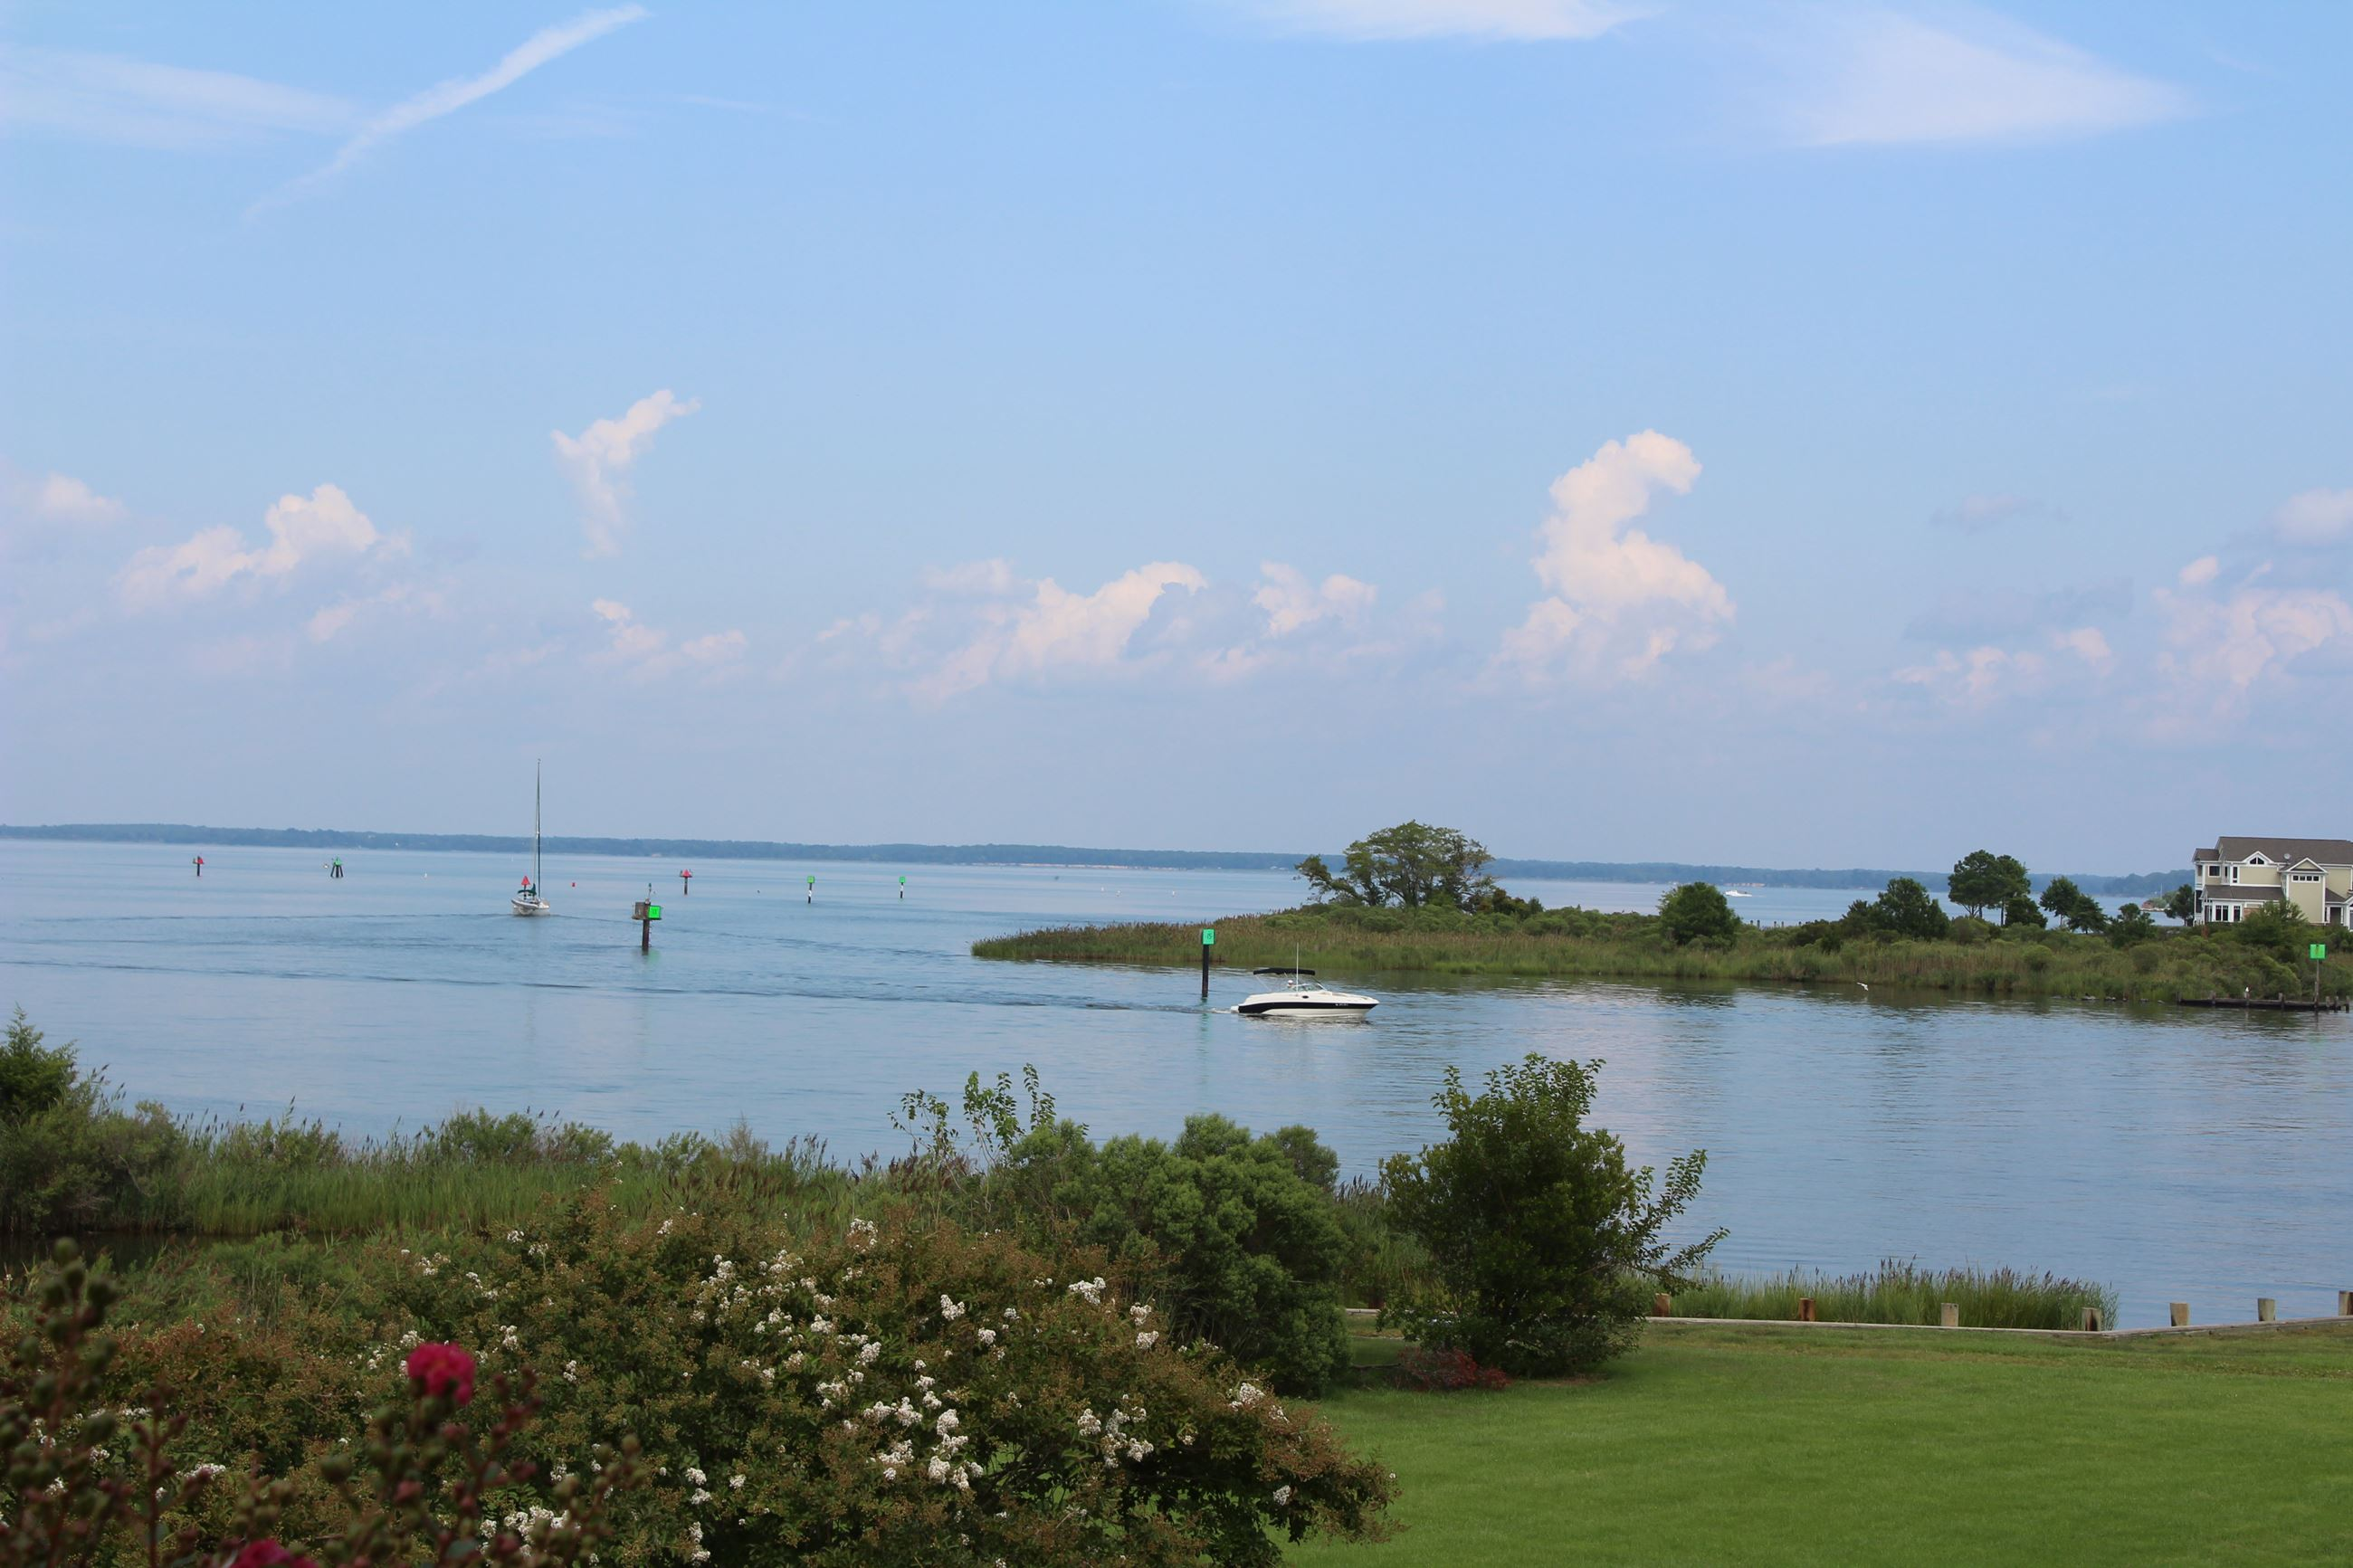 View from Chesapeake Heritage & Visitors Center